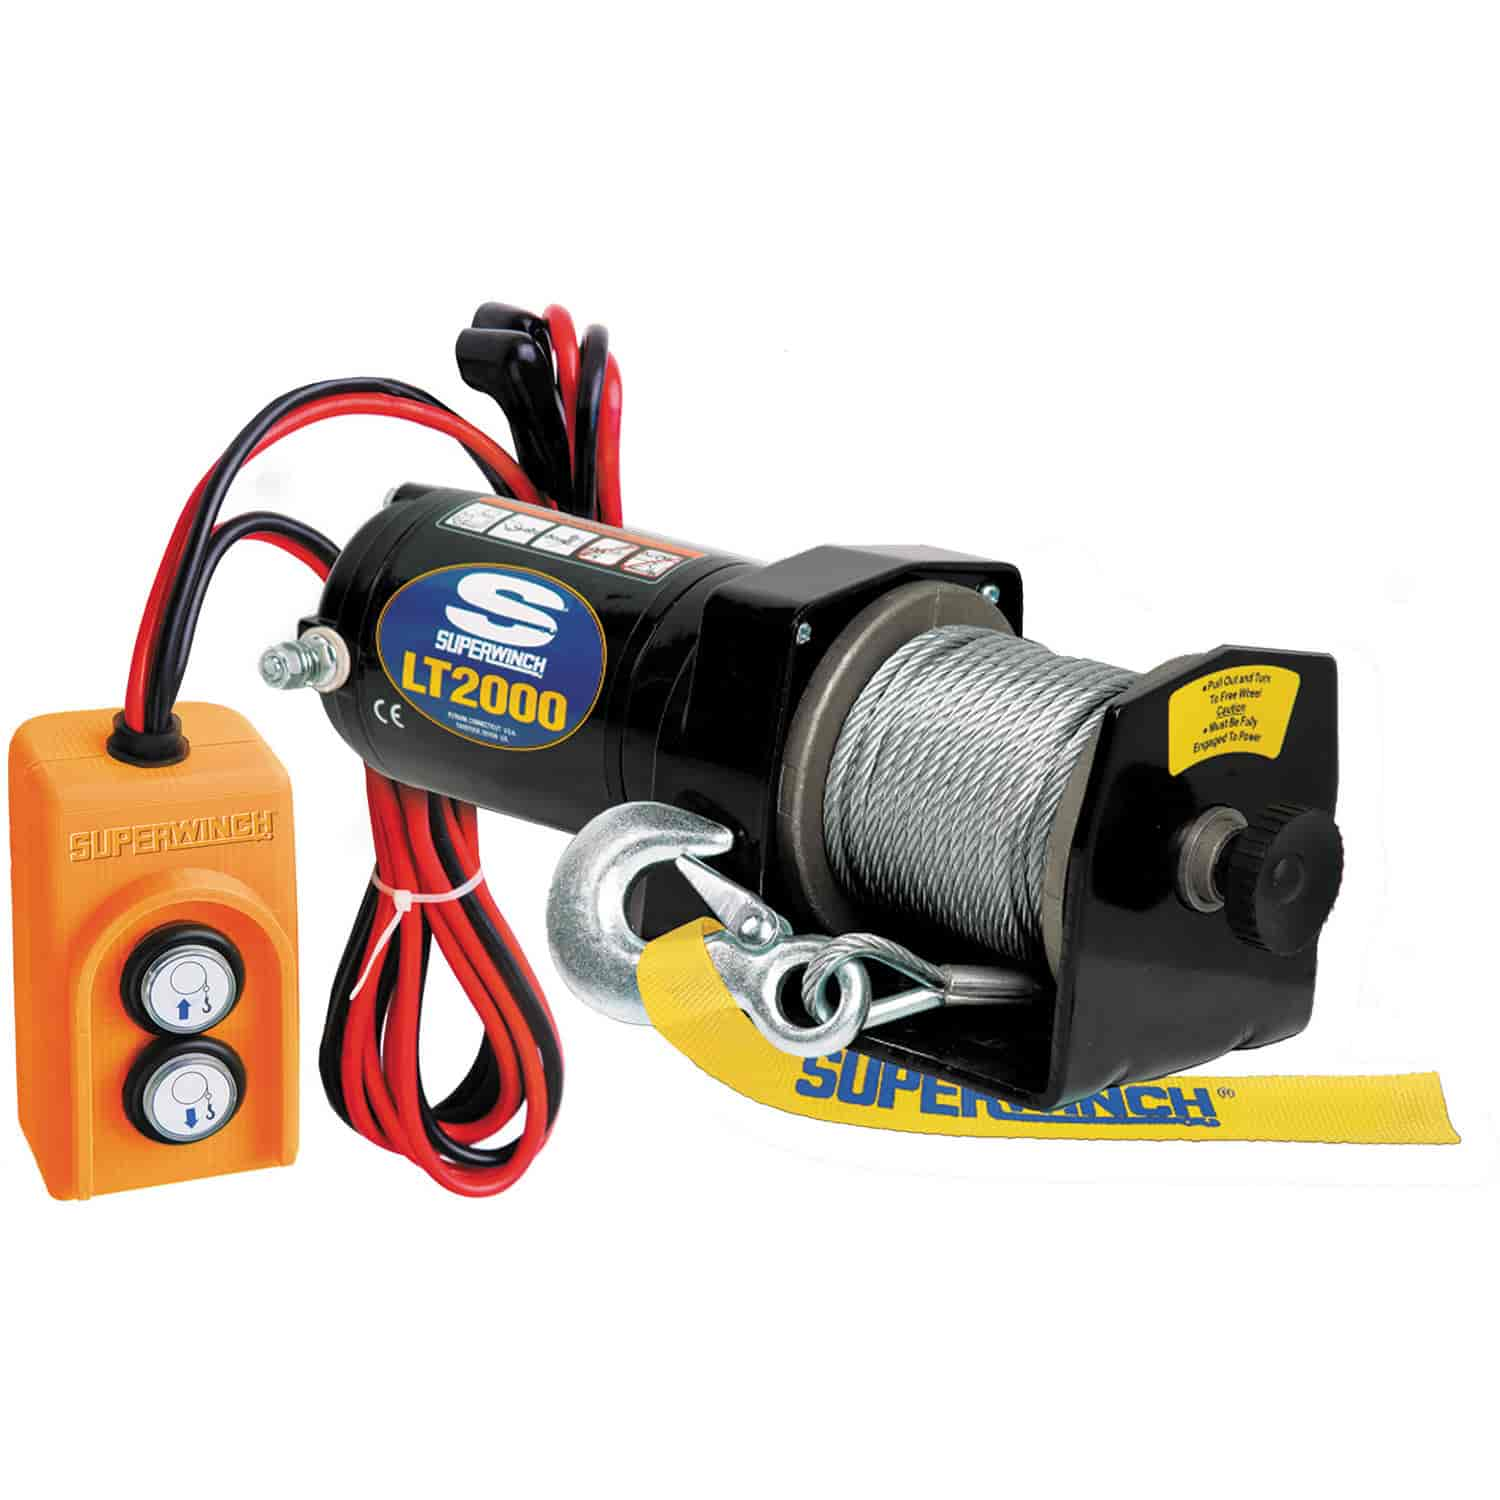 Superwinch 1220210 - Superwinch LT2000 Winch